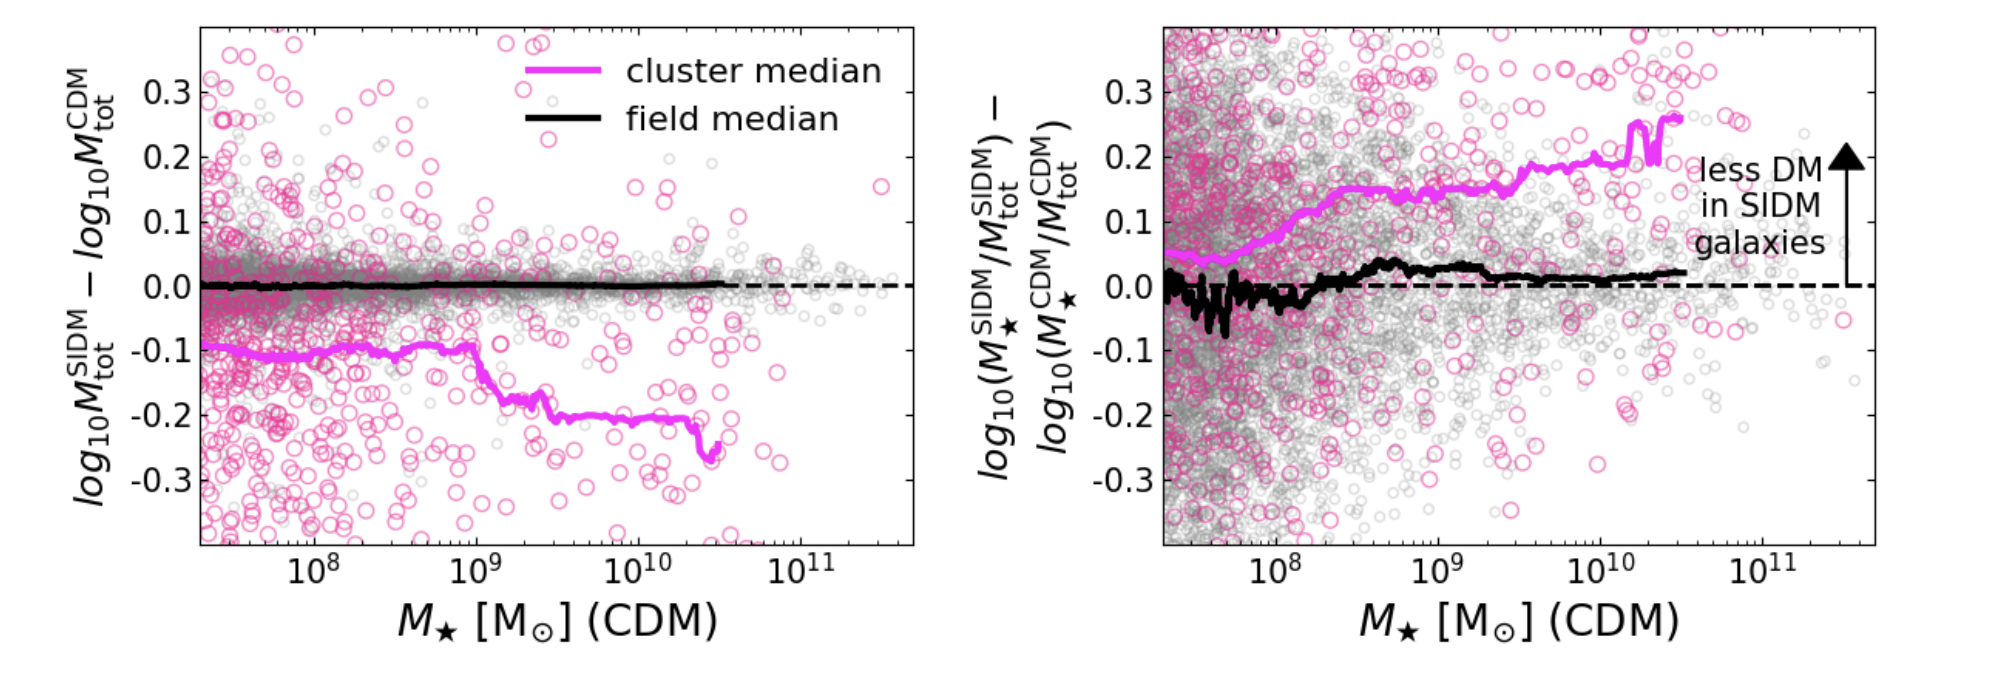 Two panels as described in the caption. Both are on a scale from -0.3 to +0.3 on the vertical axis and 10^8 to 10^11 on the horizontal axis. In the left figure, the pink median line is around -0.1, trending towards -0.2 for larger stellar masses; for the right one, the median line starts at about +0.1 and reaches about +0.2 for higher masses.